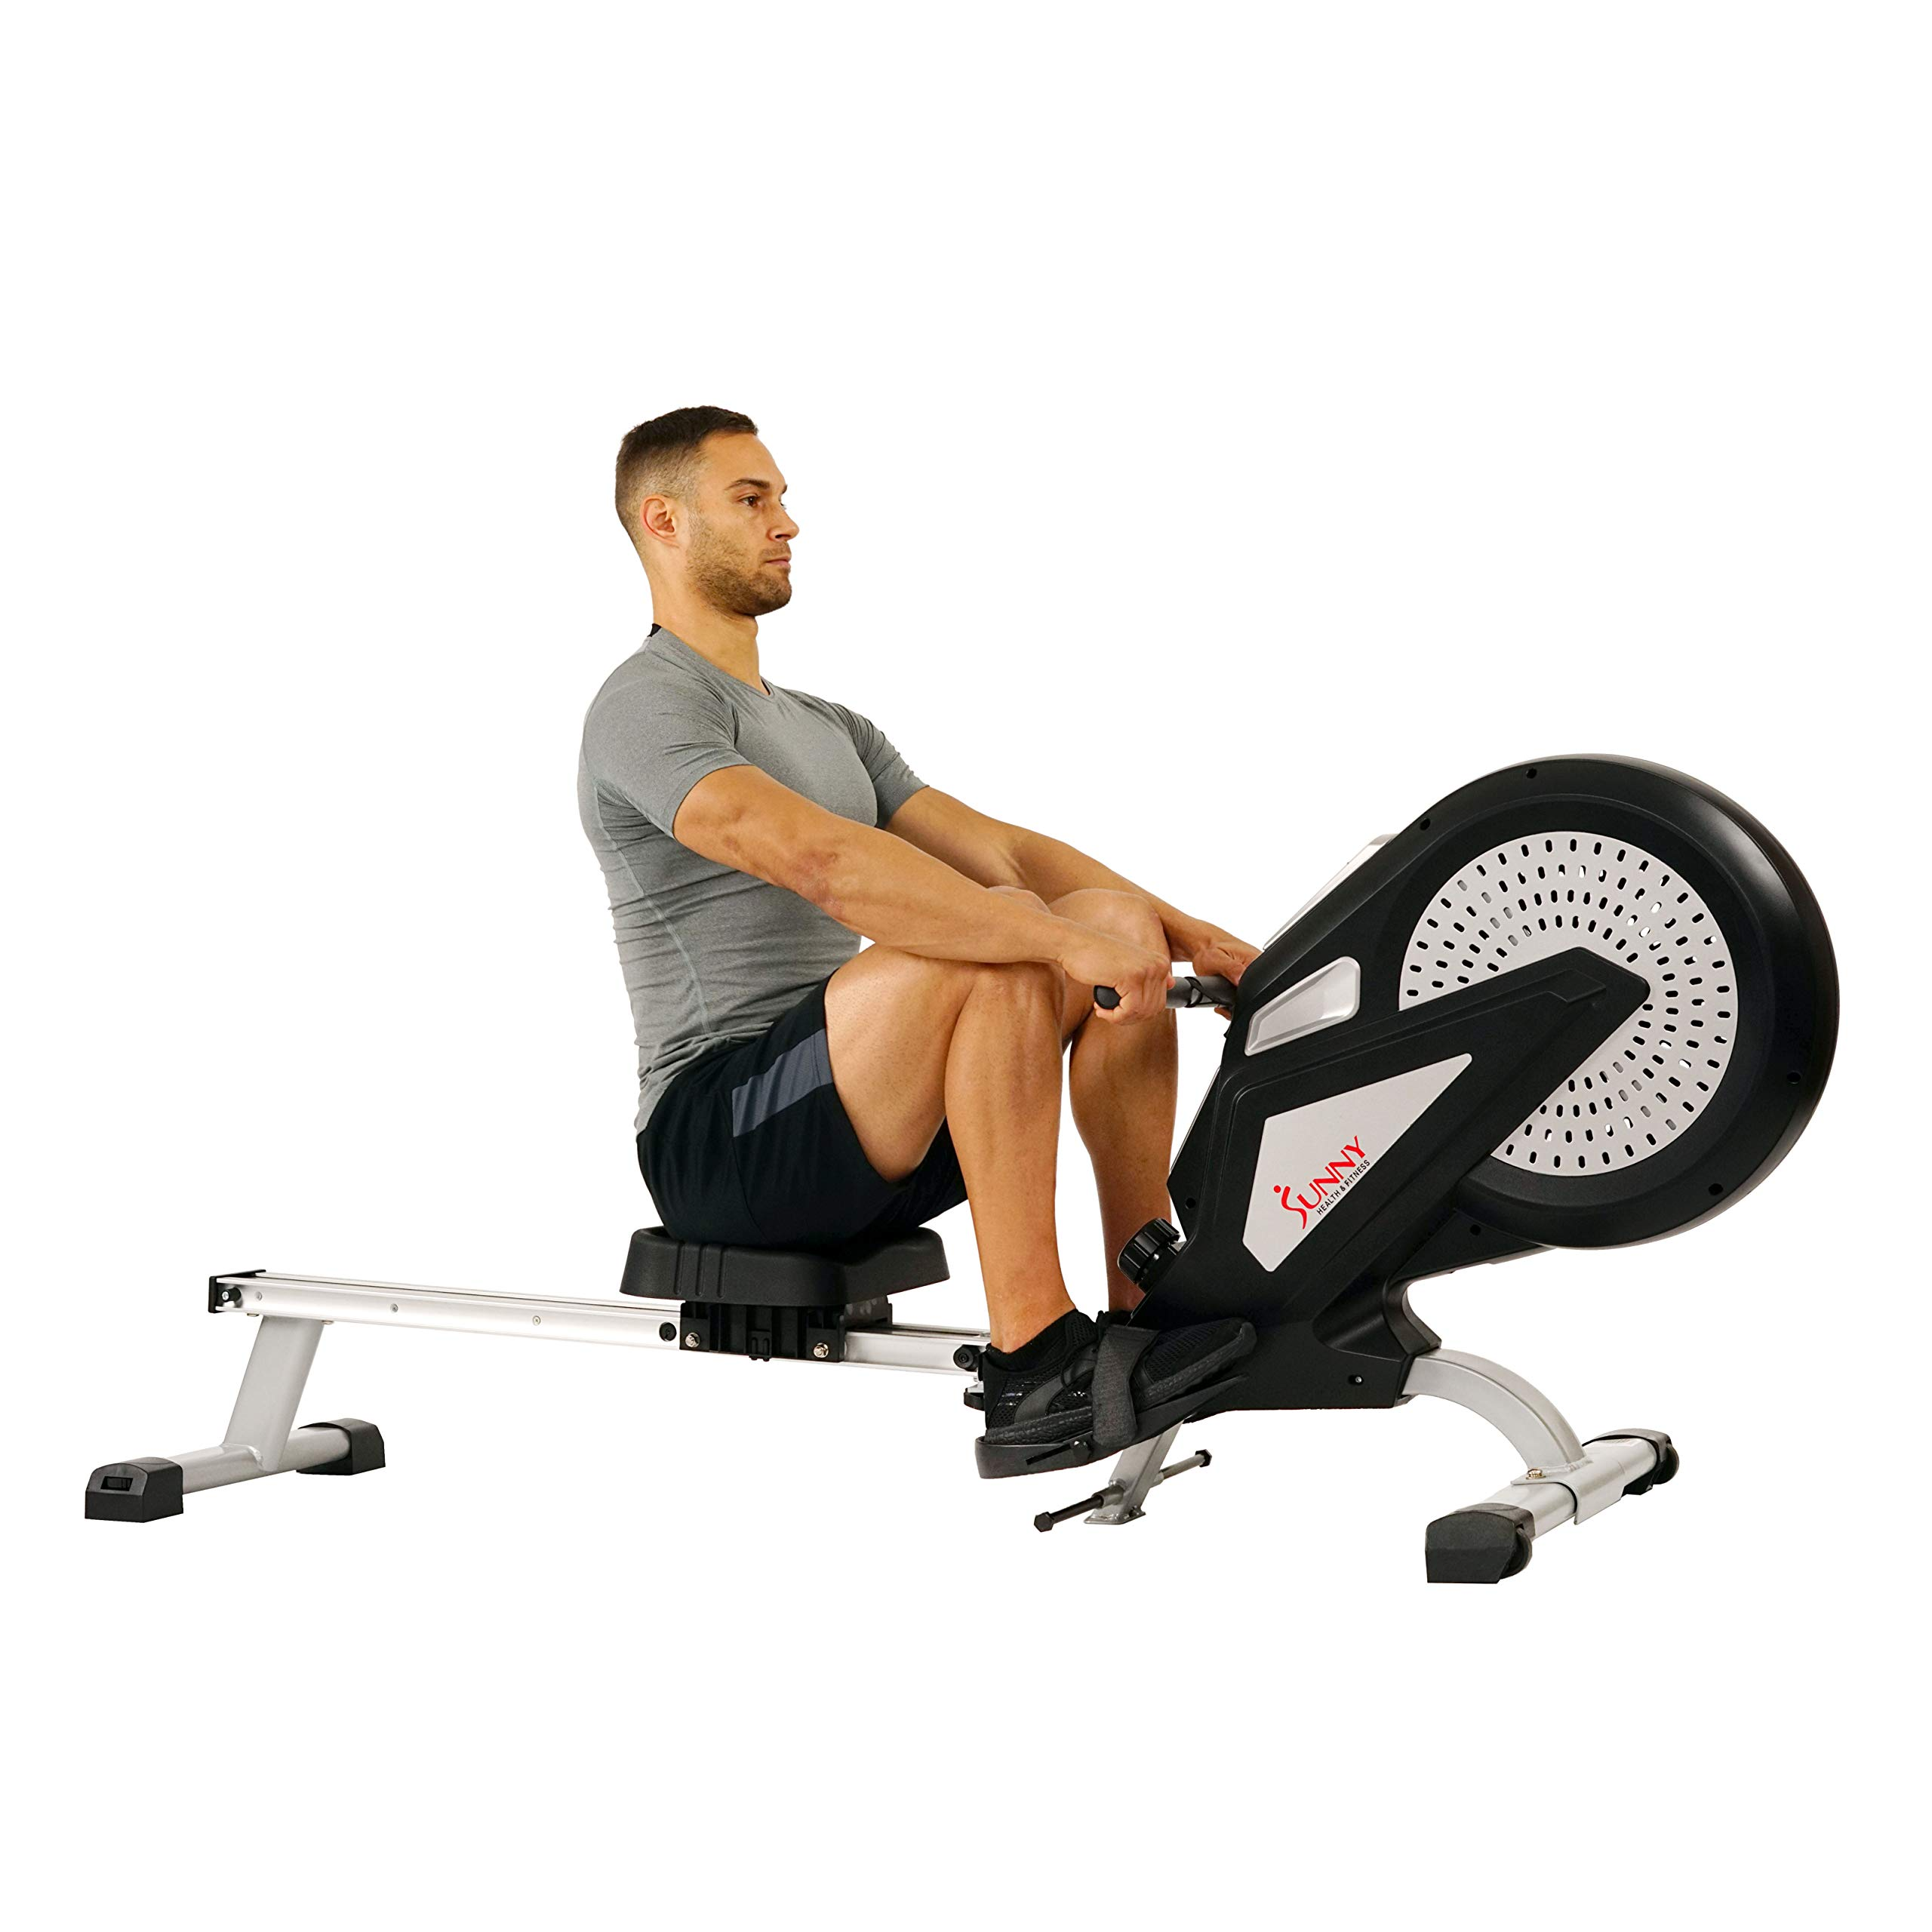 Sunny Health & Fitness Air Rower Rowing Machine w/ LCD Monitor, Dual Belt and Air Resistance SF-RW5623 by Sunny Health & Fitness (Image #4)